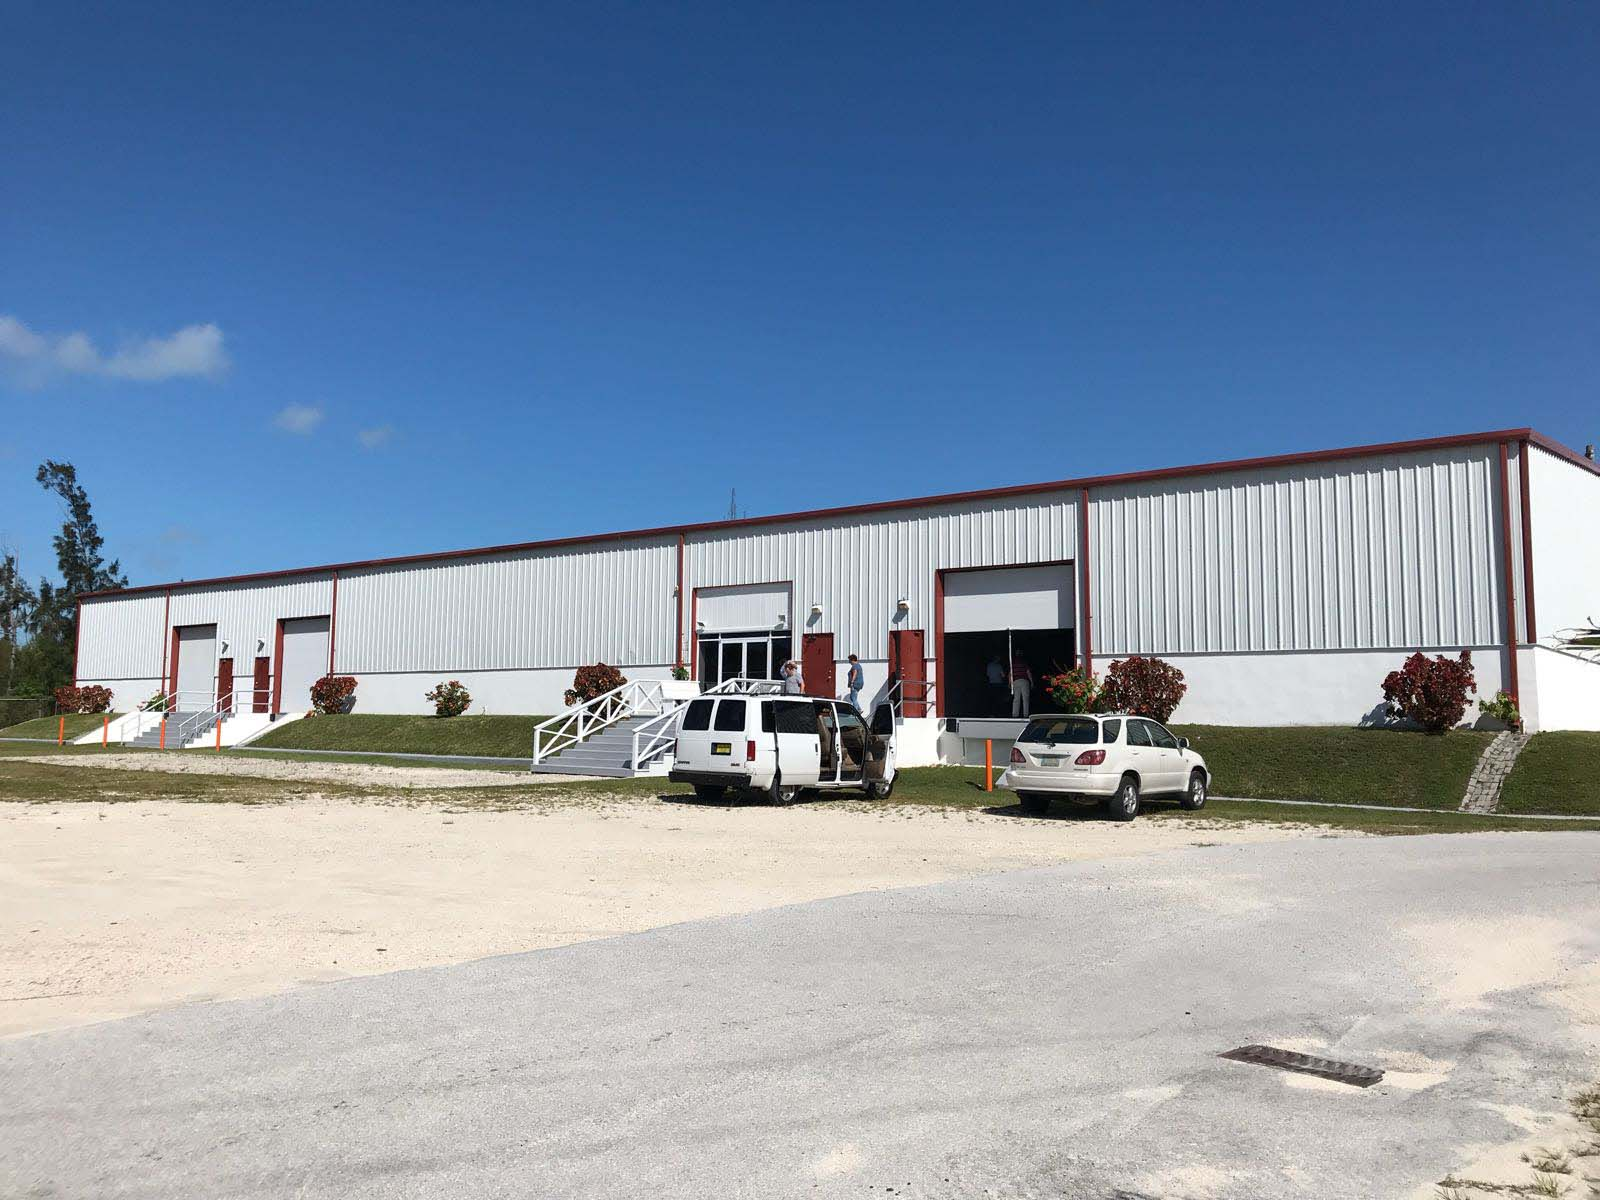 Commercial for Rent at Superb Warehouse Space in Civic Industrial Area of Grand Bahama Civic Industrial Area, Grand Bahama, Bahamas